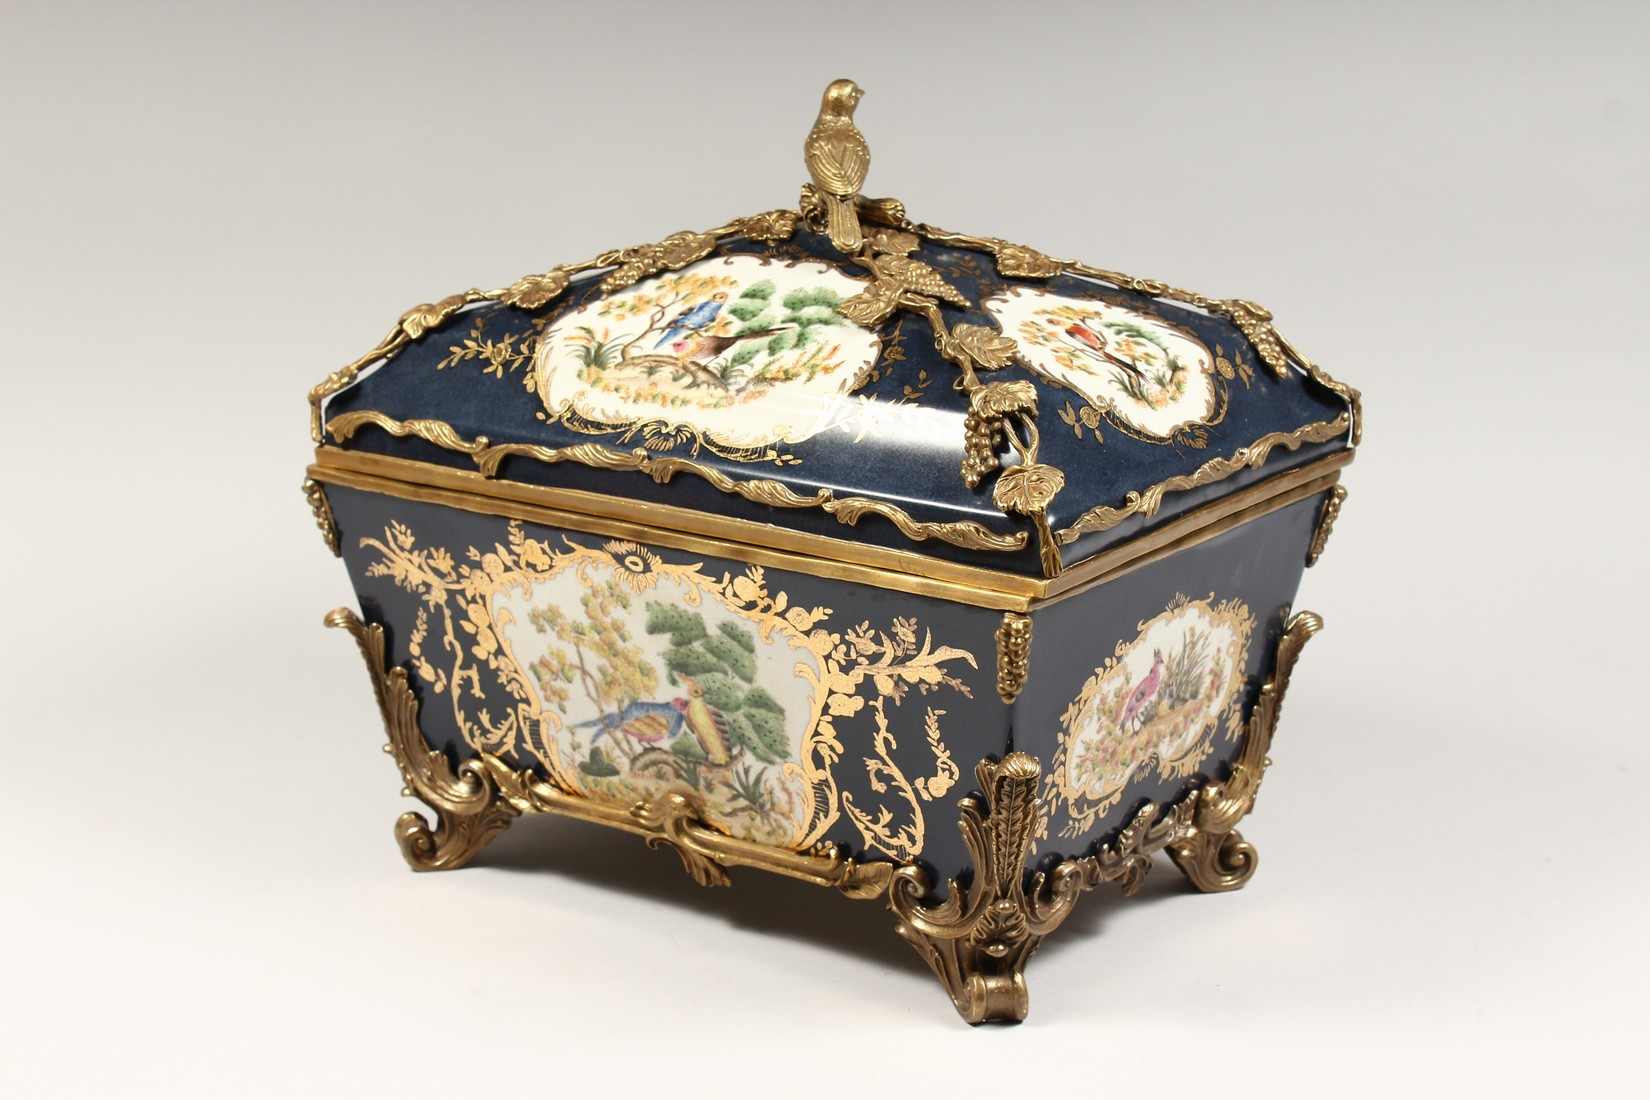 A DECORATIVE PORCELAIN AND ORMOLU MOUNTED SEVRES STYLE CASKET AND COVER. 15ins long - Image 2 of 5